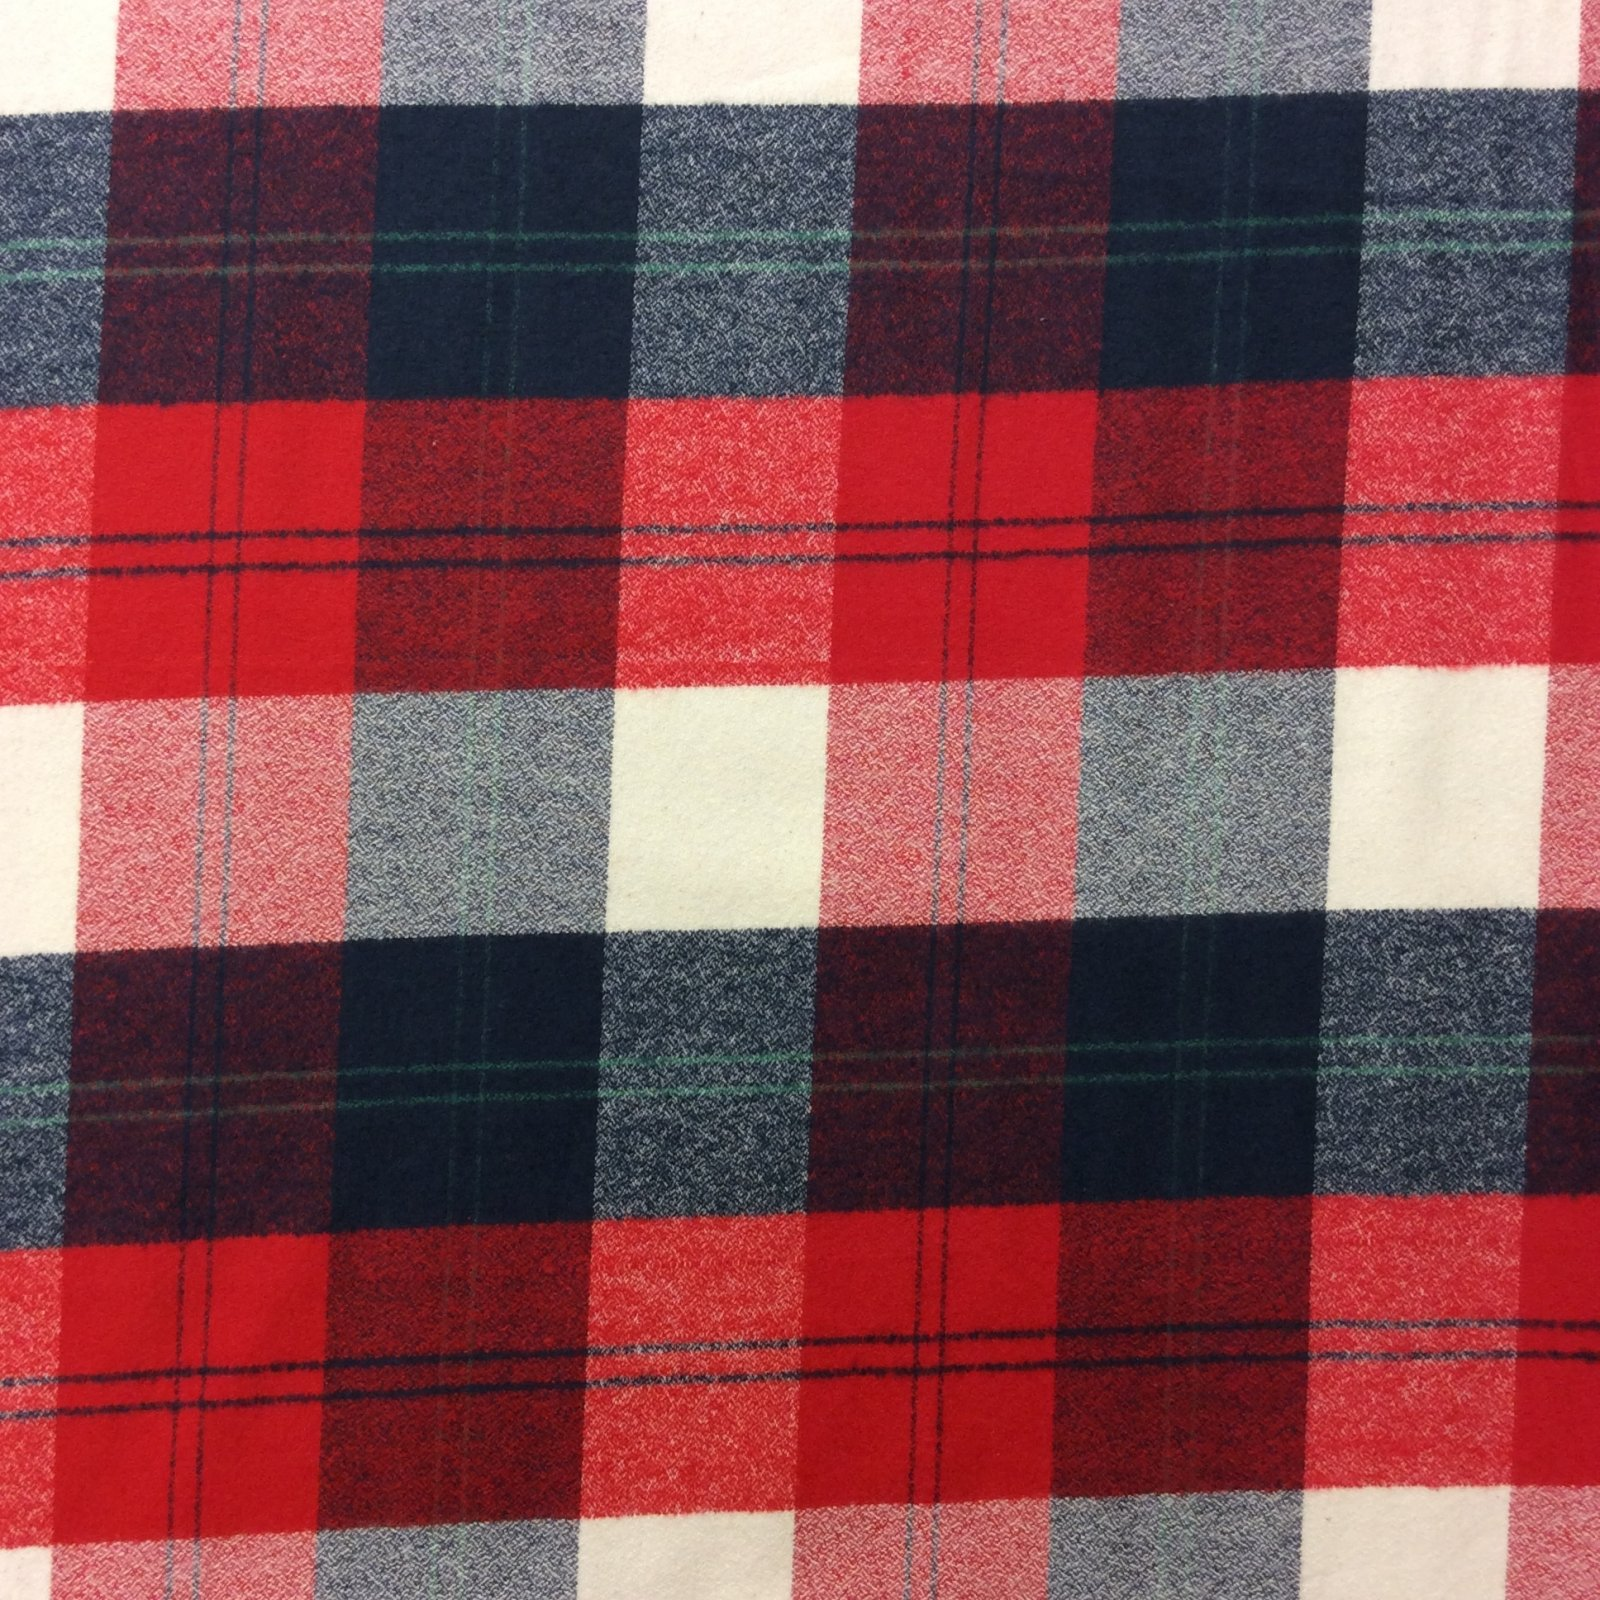 Red White and Blue Plaid Buffalo Check Lumberjack Cotton Fabric Flannel RK100